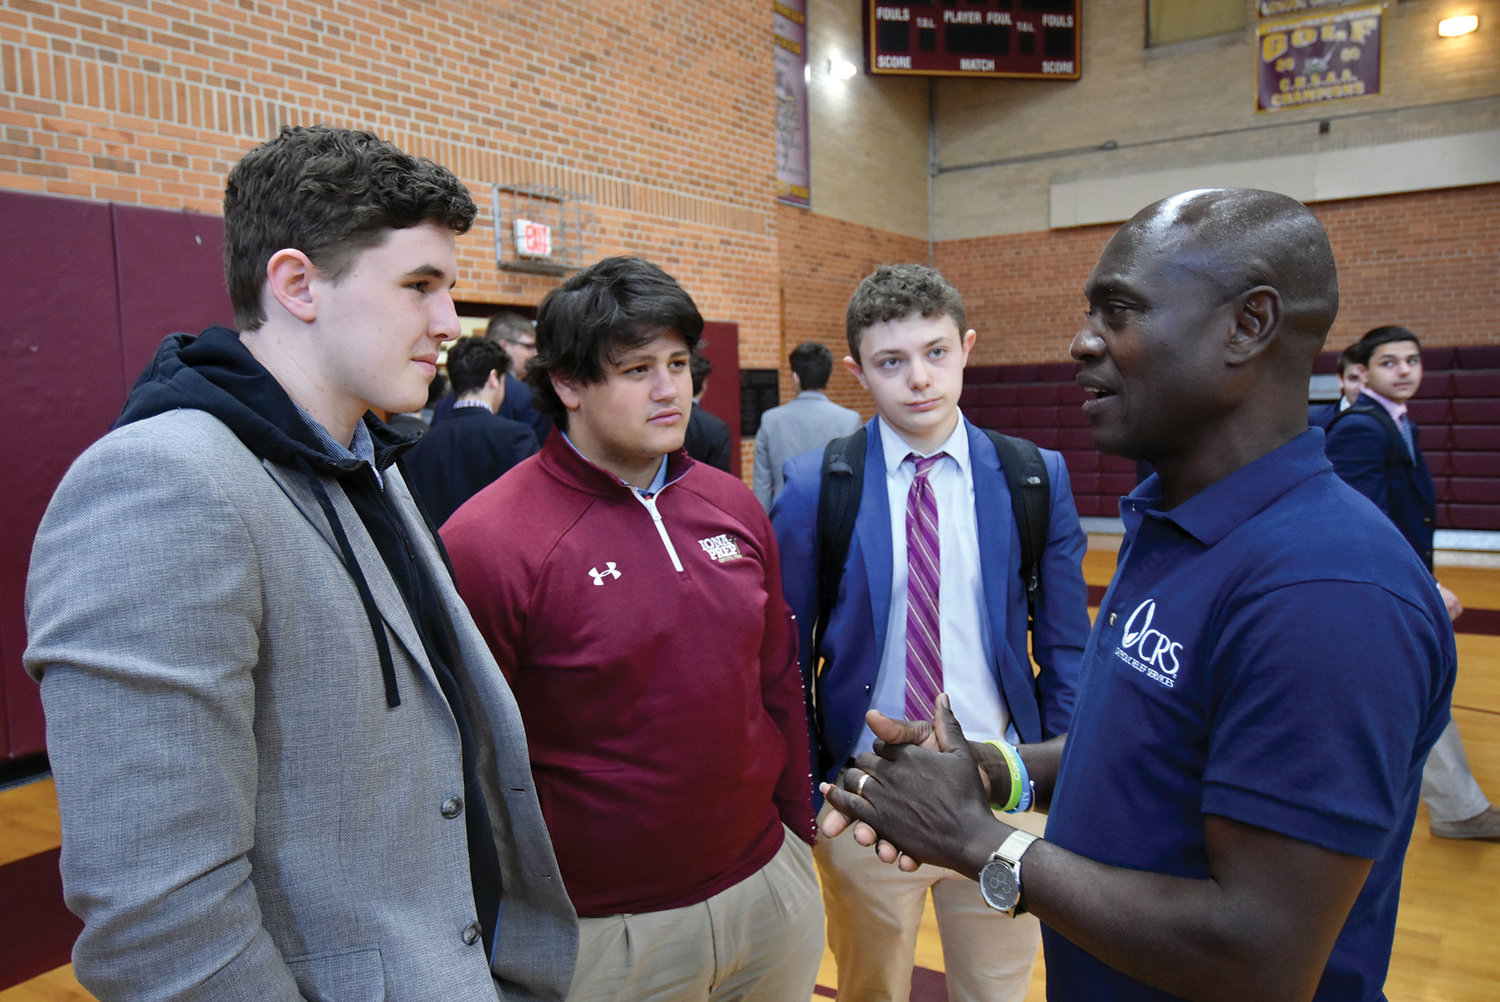 For the past 10 Lenten seasons, Thomas Awiapo has come to the United States to tell his story from both sides of the CRS Rice Bowl, as a recipient and as a CRS employee. Above, Awiapo speaks with Iona Prep students during his recent talk at the New Rochelle school.